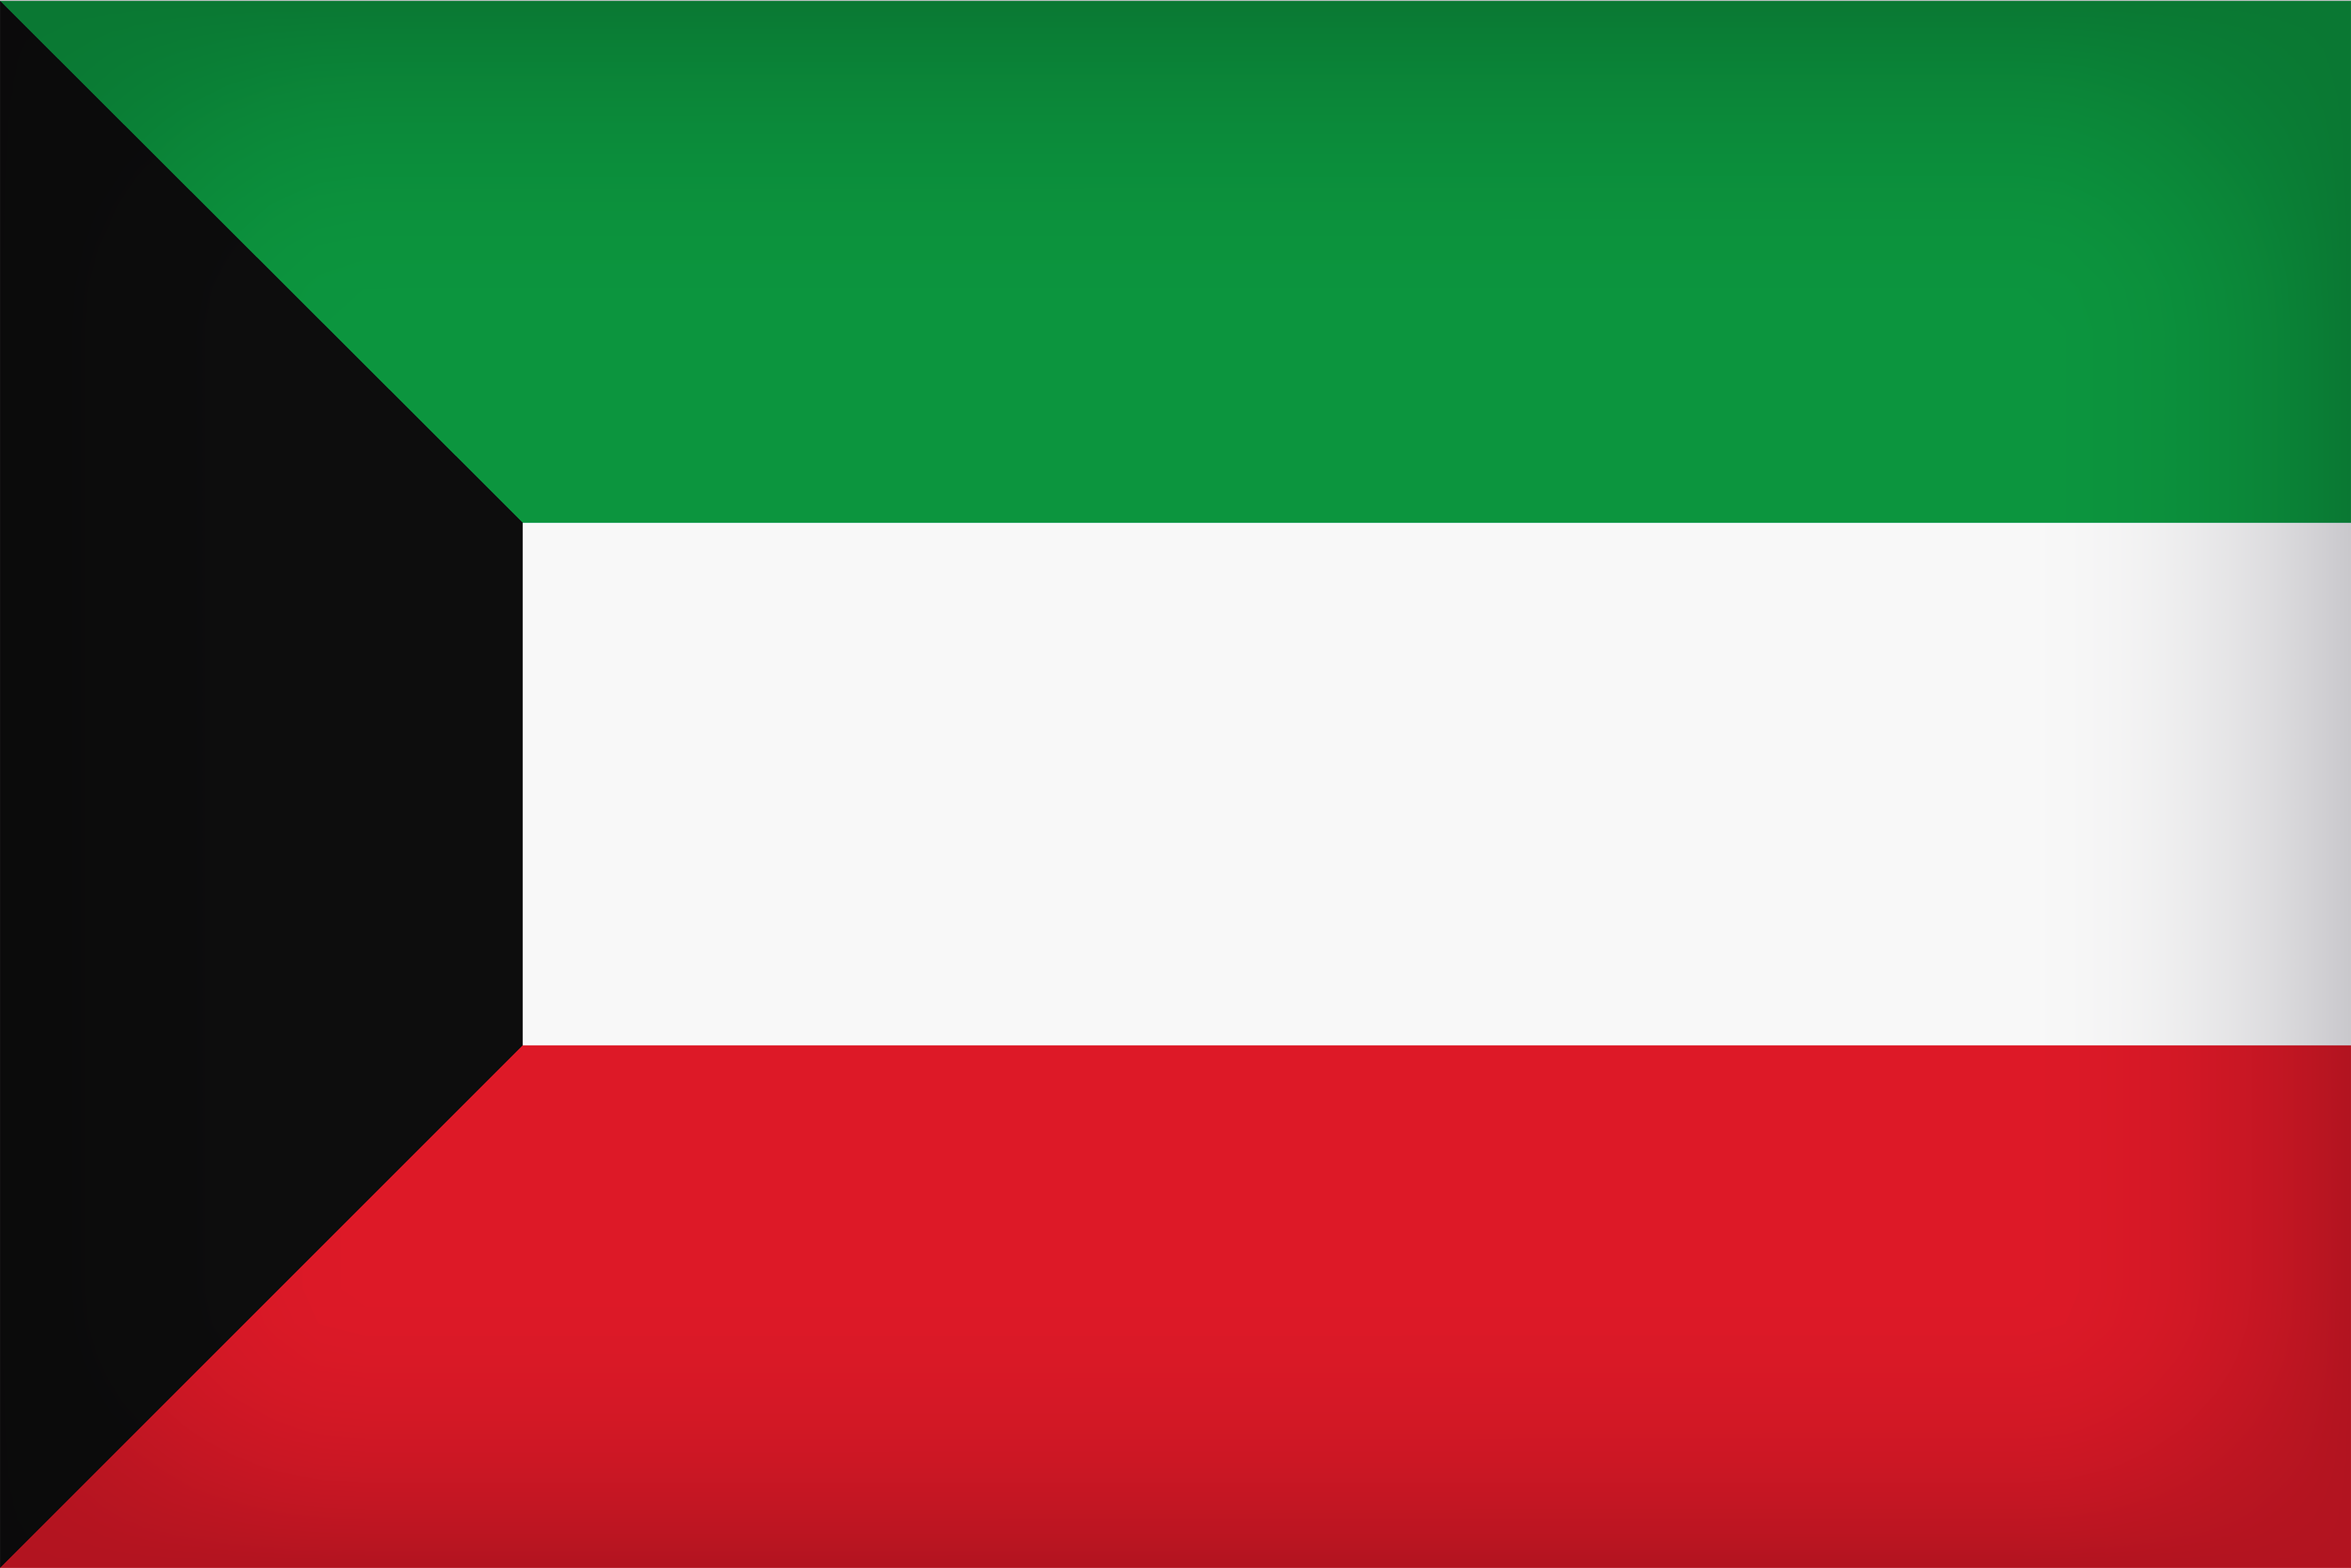 Kuwait_Large_Flag.png?m=1441179092.